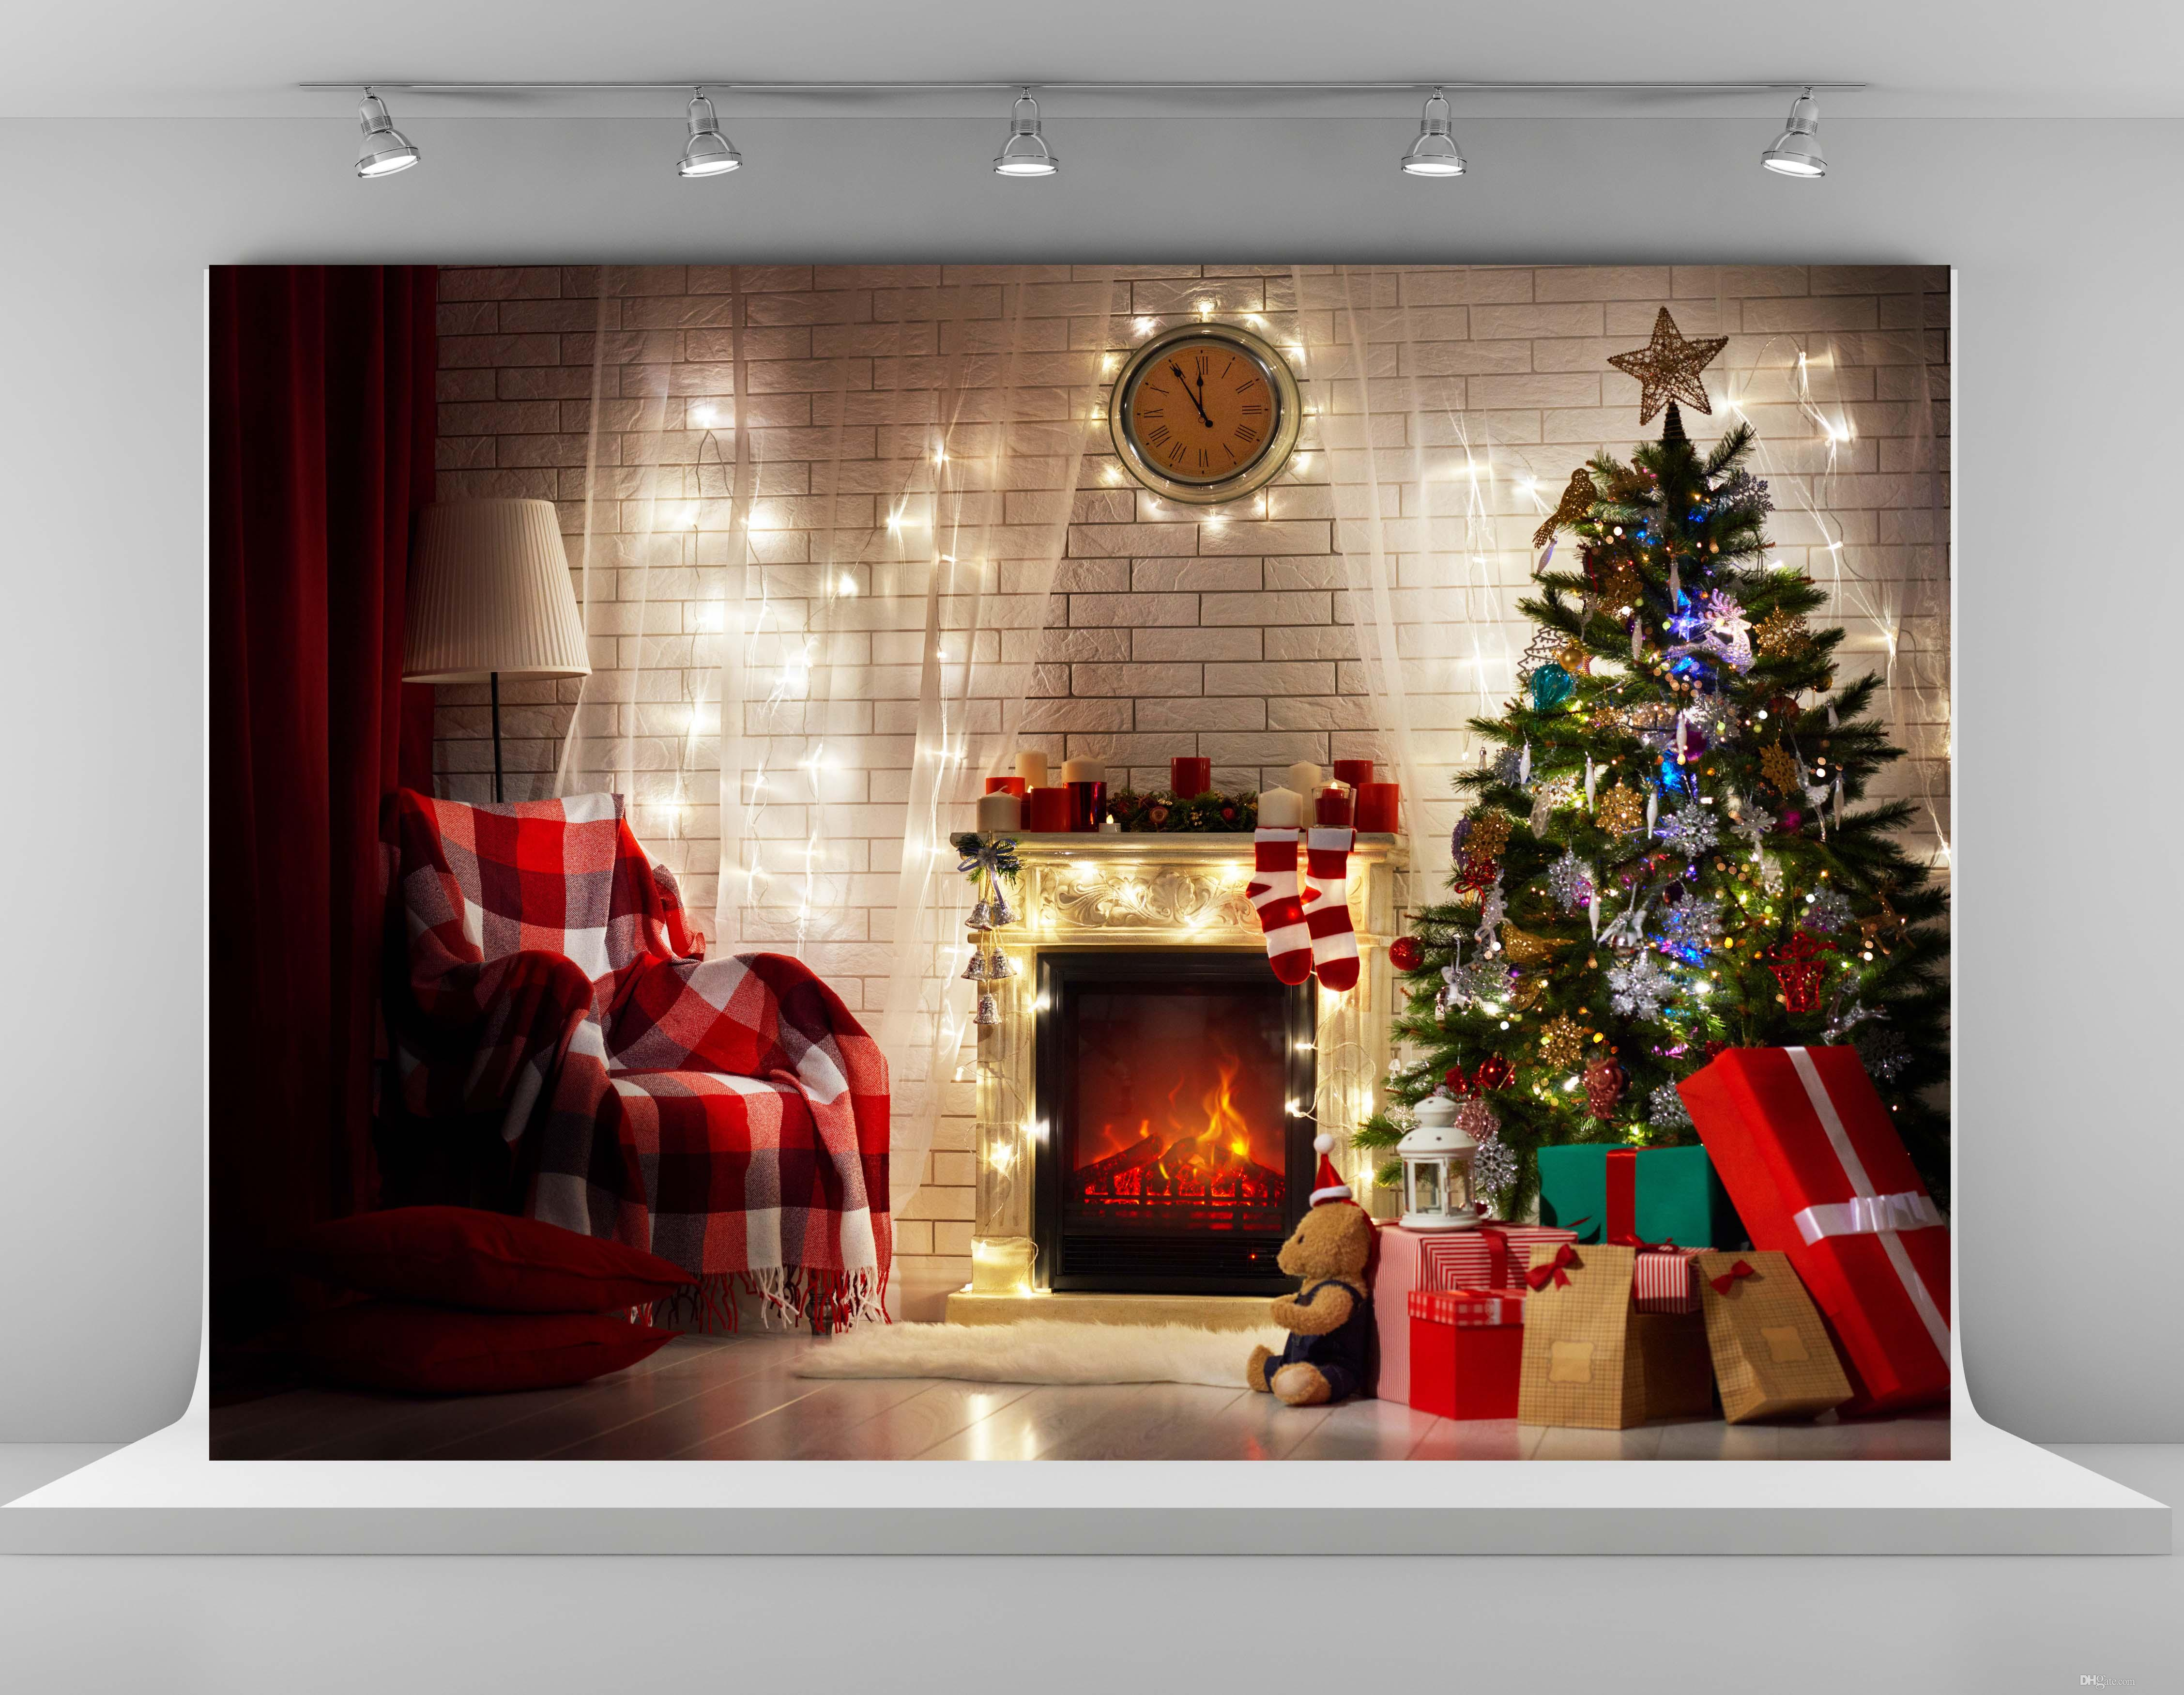 Christmas Tree Background.2019 Christmas Photography Backdrops Indoor Christmas Tree Background Photo 7x5ft Fireplace Backdrop Props For Children From Fanny08 24 73